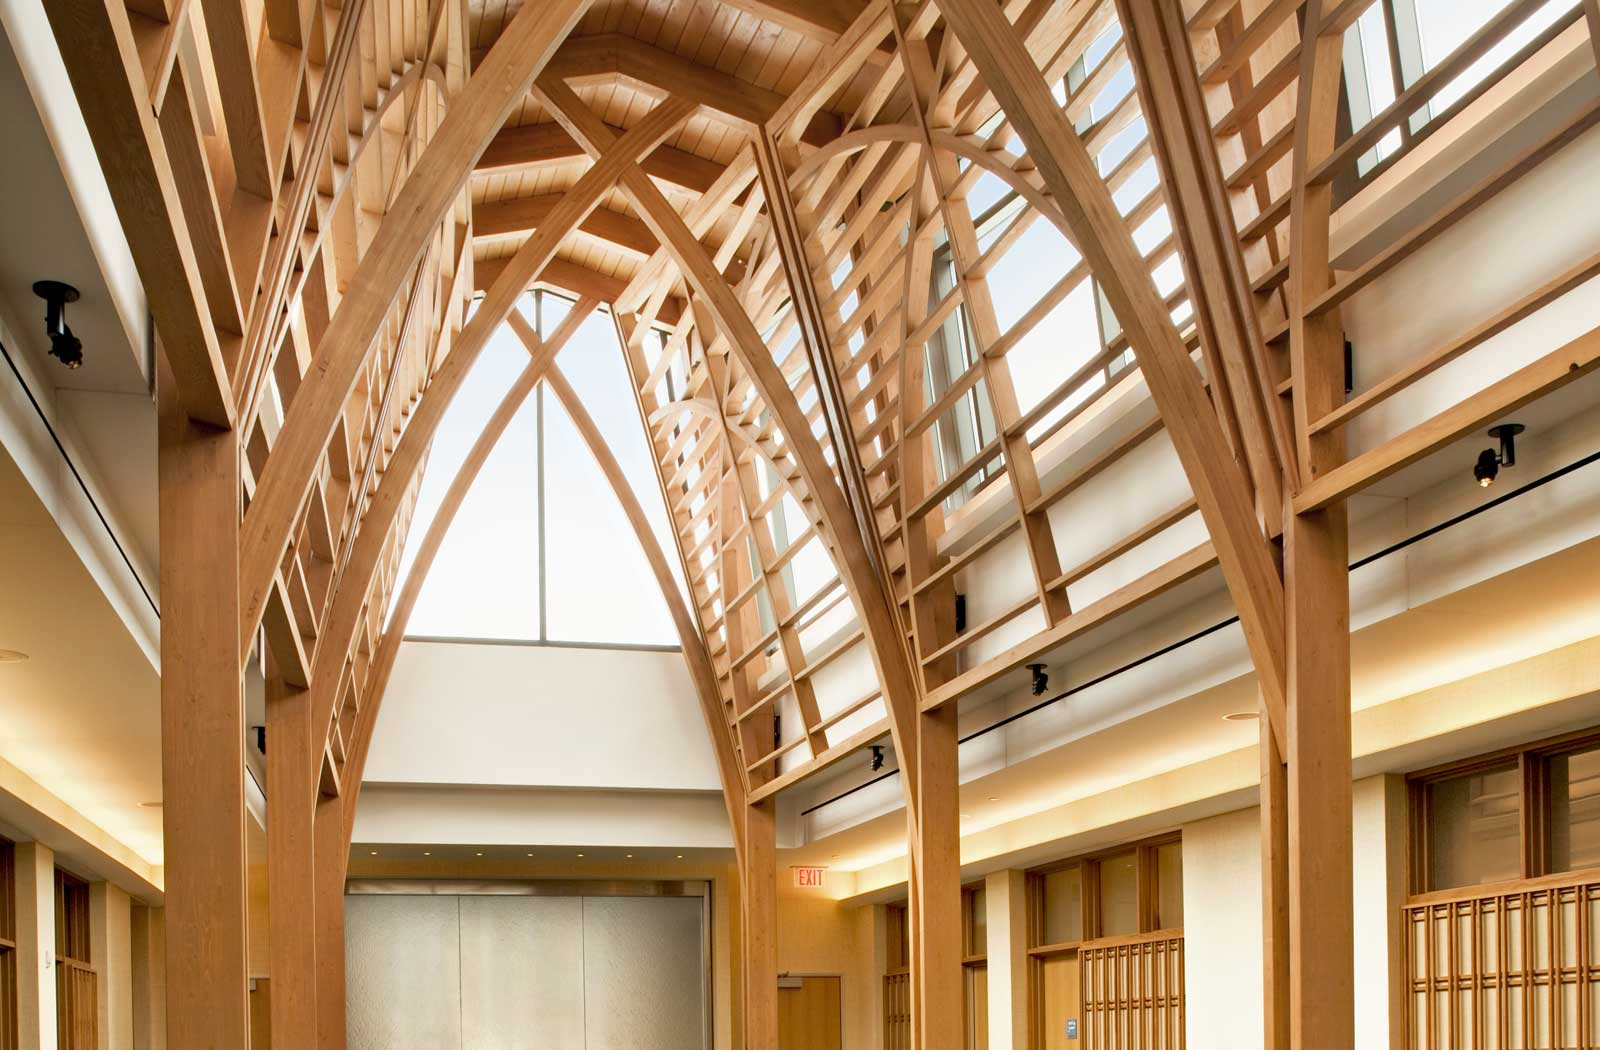 Cross Laminated Timber (CLT) Market Report, Industry Overview, Growth, Opportunities and Forecast 2019-2024